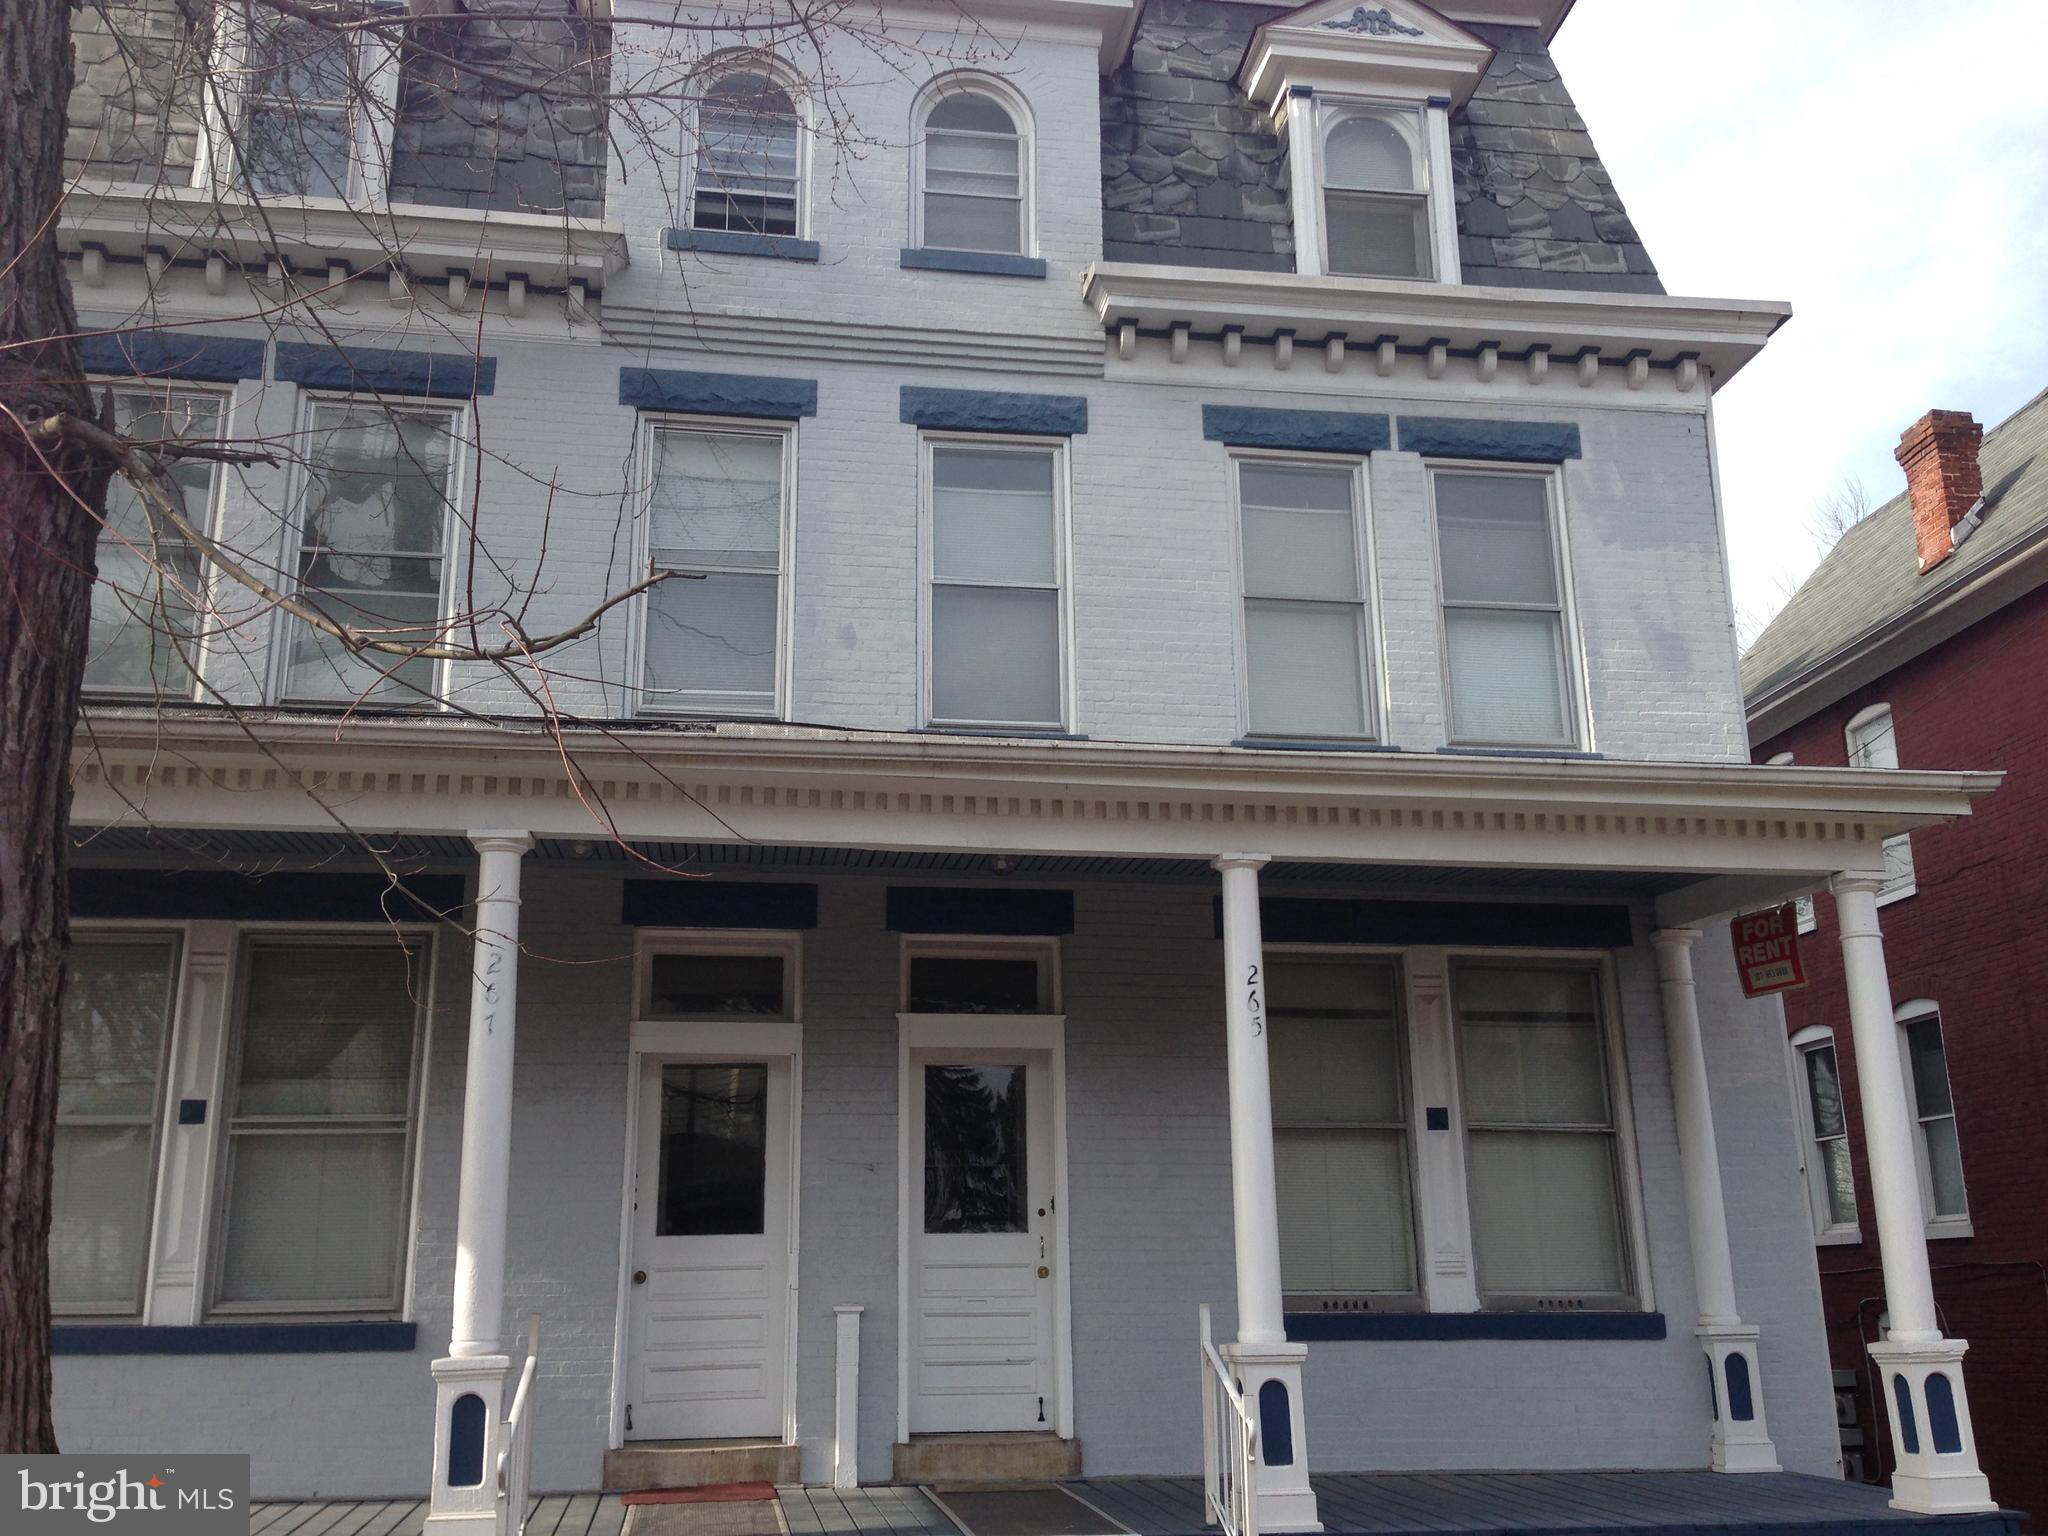 Here is your chance to own a truly amazing property, You'll love this charming, 3-story all brick building with spectacular curb appeal and with plenty of upside potential, 8 1-2 BR/1 Bath, off street parking. All utilities fully separated. This property is part of a portfolio comprised by 4 building for a total of 23 units. MLS# MDWA168602 / MDWA168598 / MDWA168610 / MDWA168612